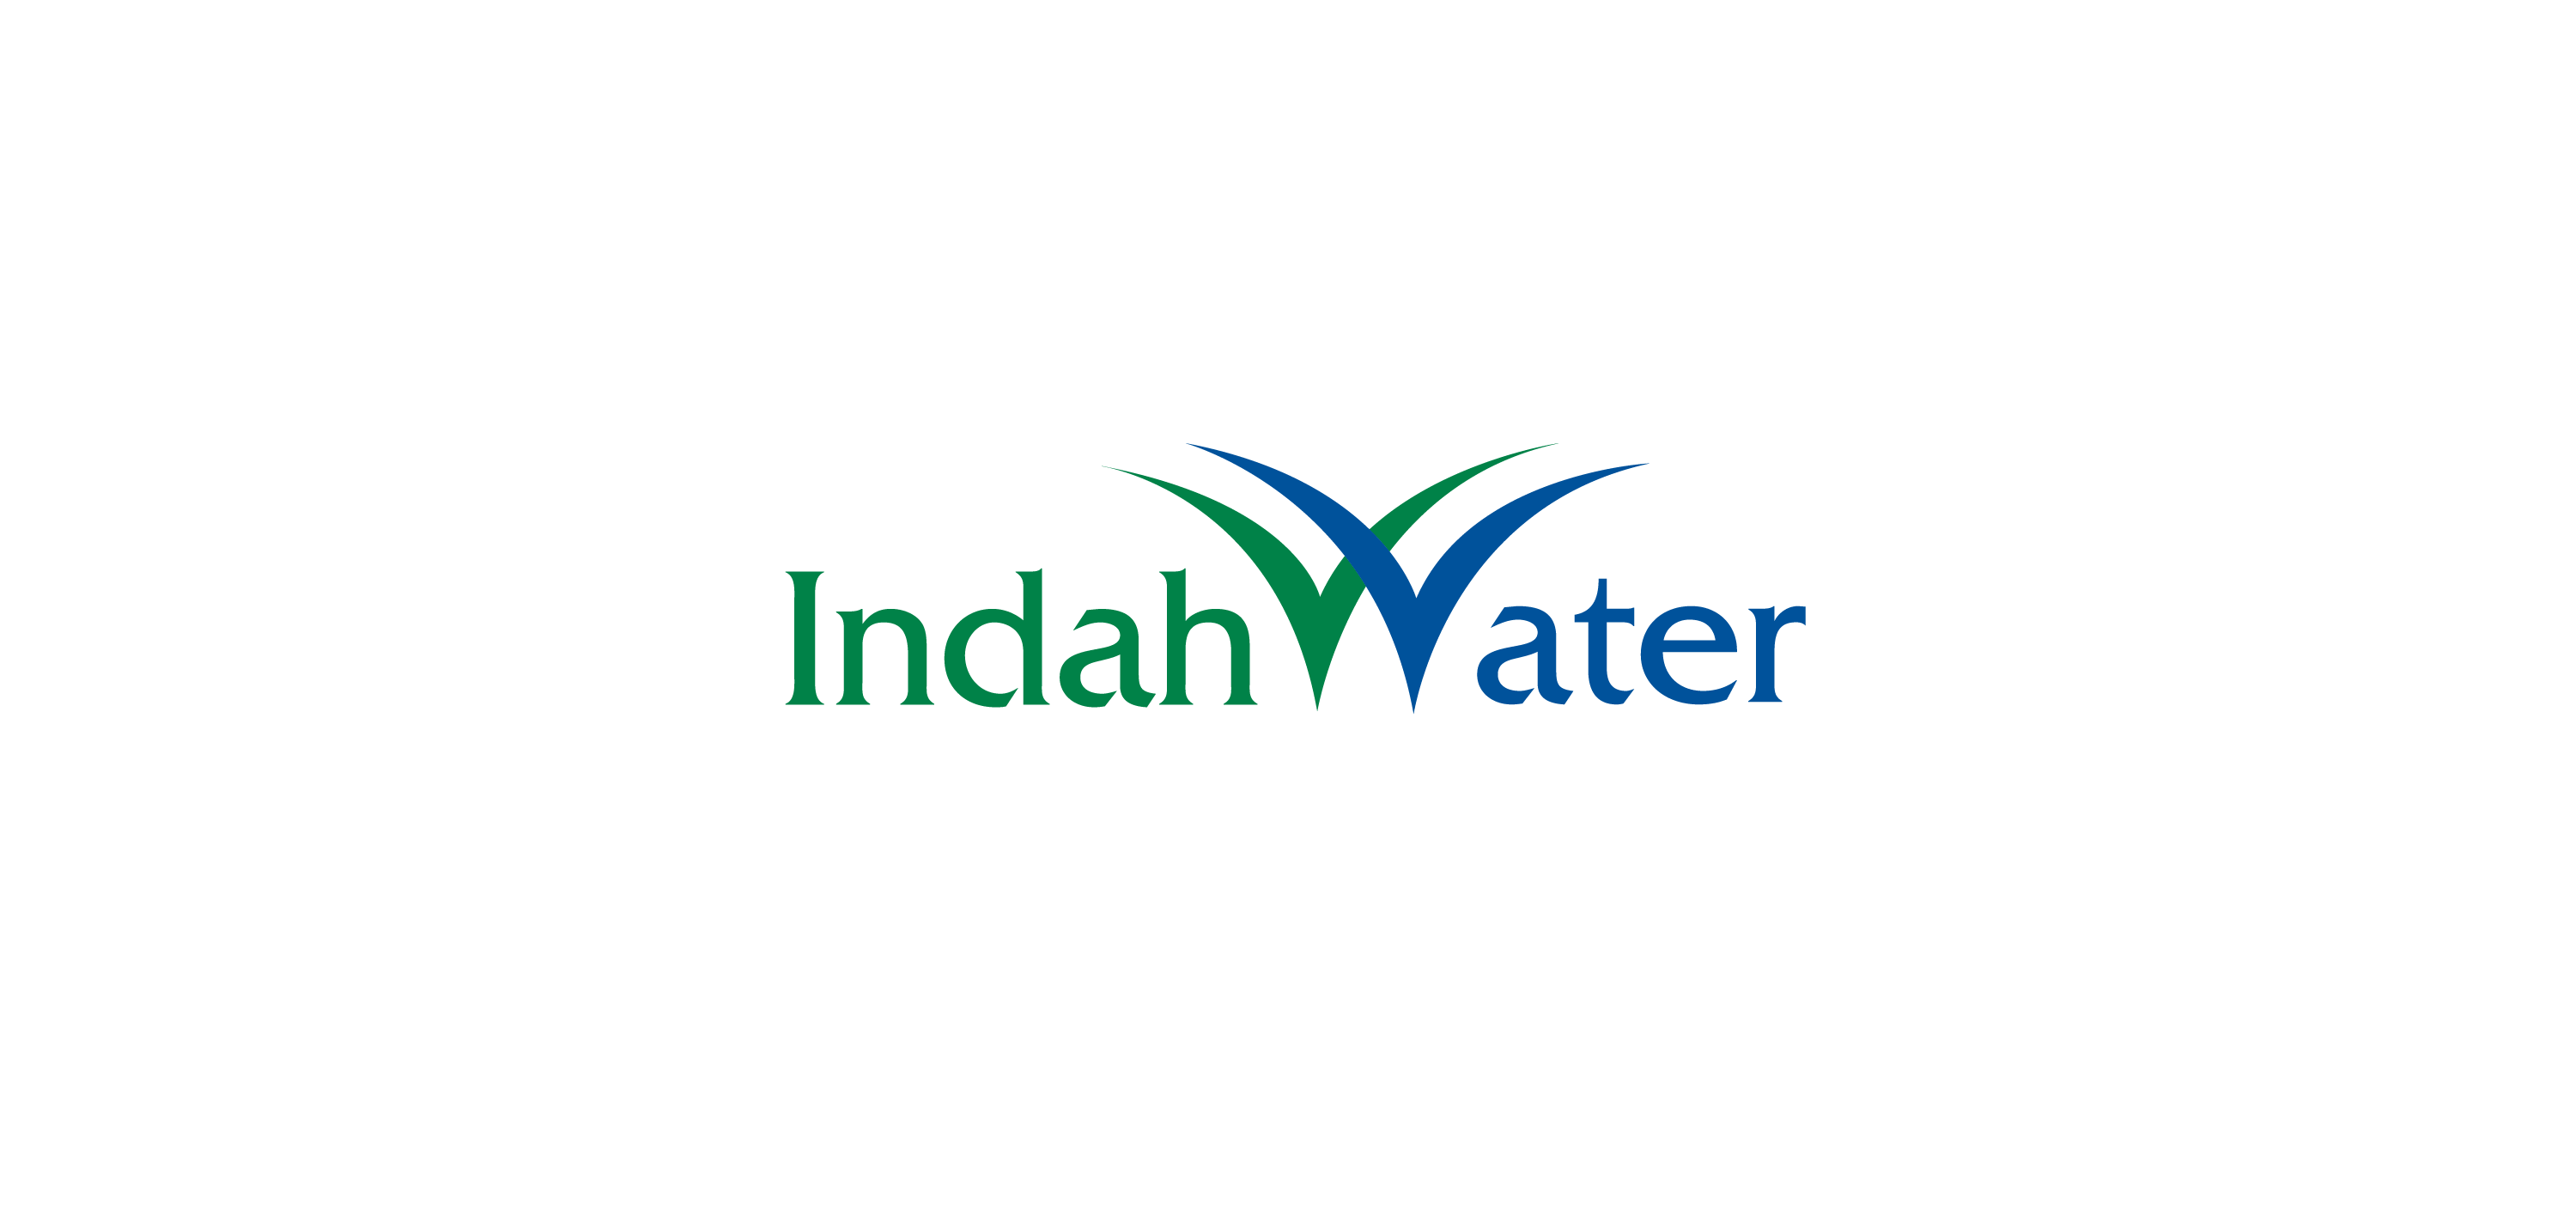 indah water logo vector